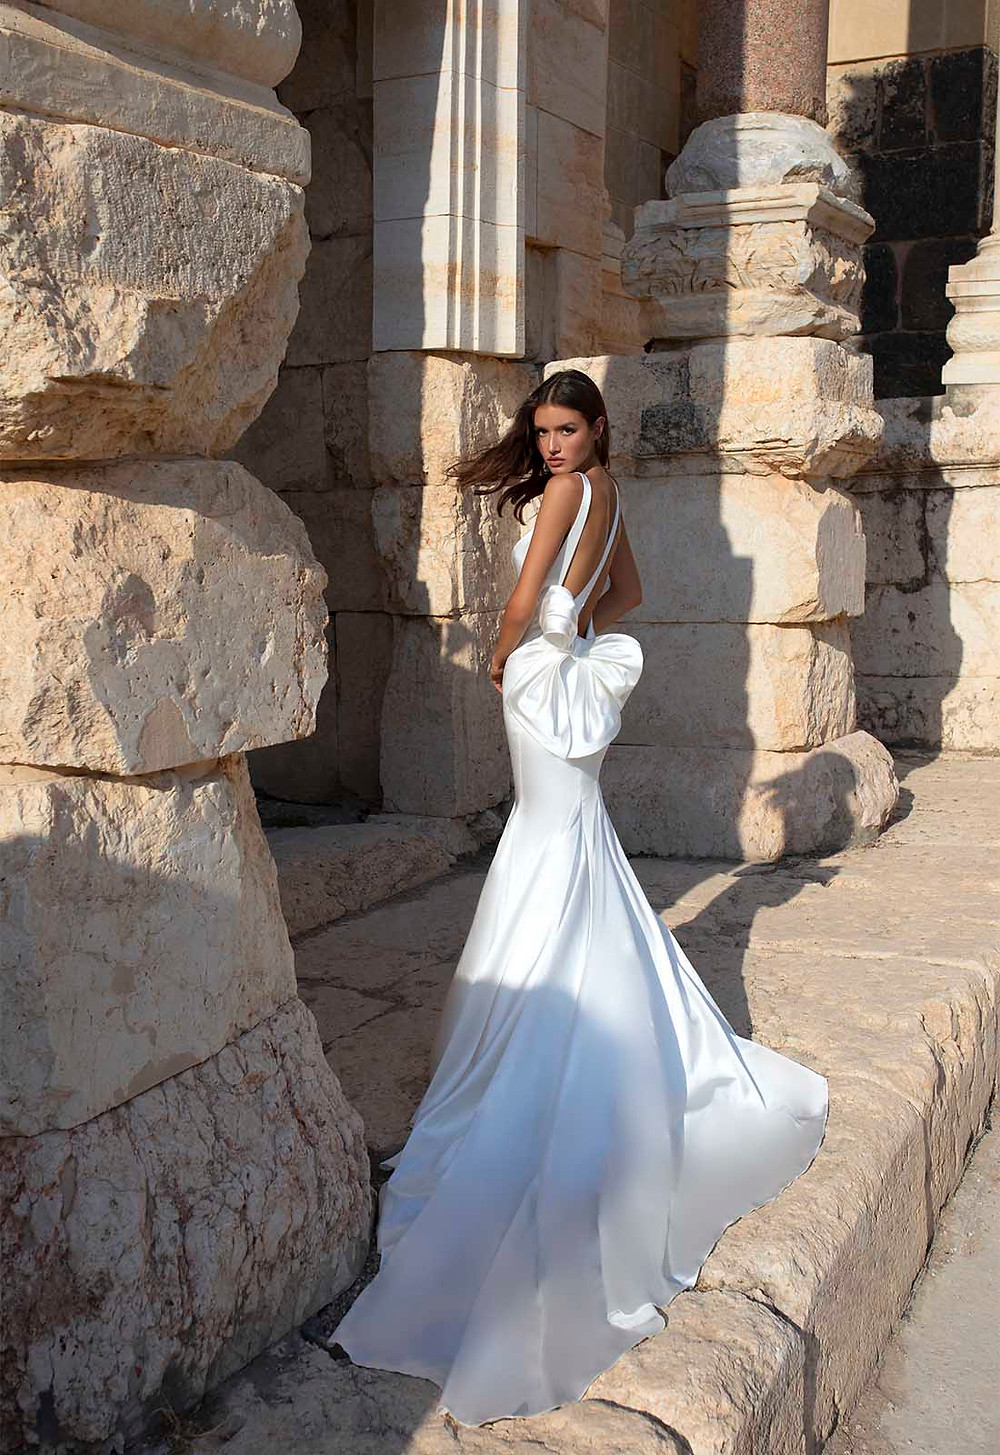 A Pnina Tornai silk mermaid fit and flare wedding dress with a low back and a bow